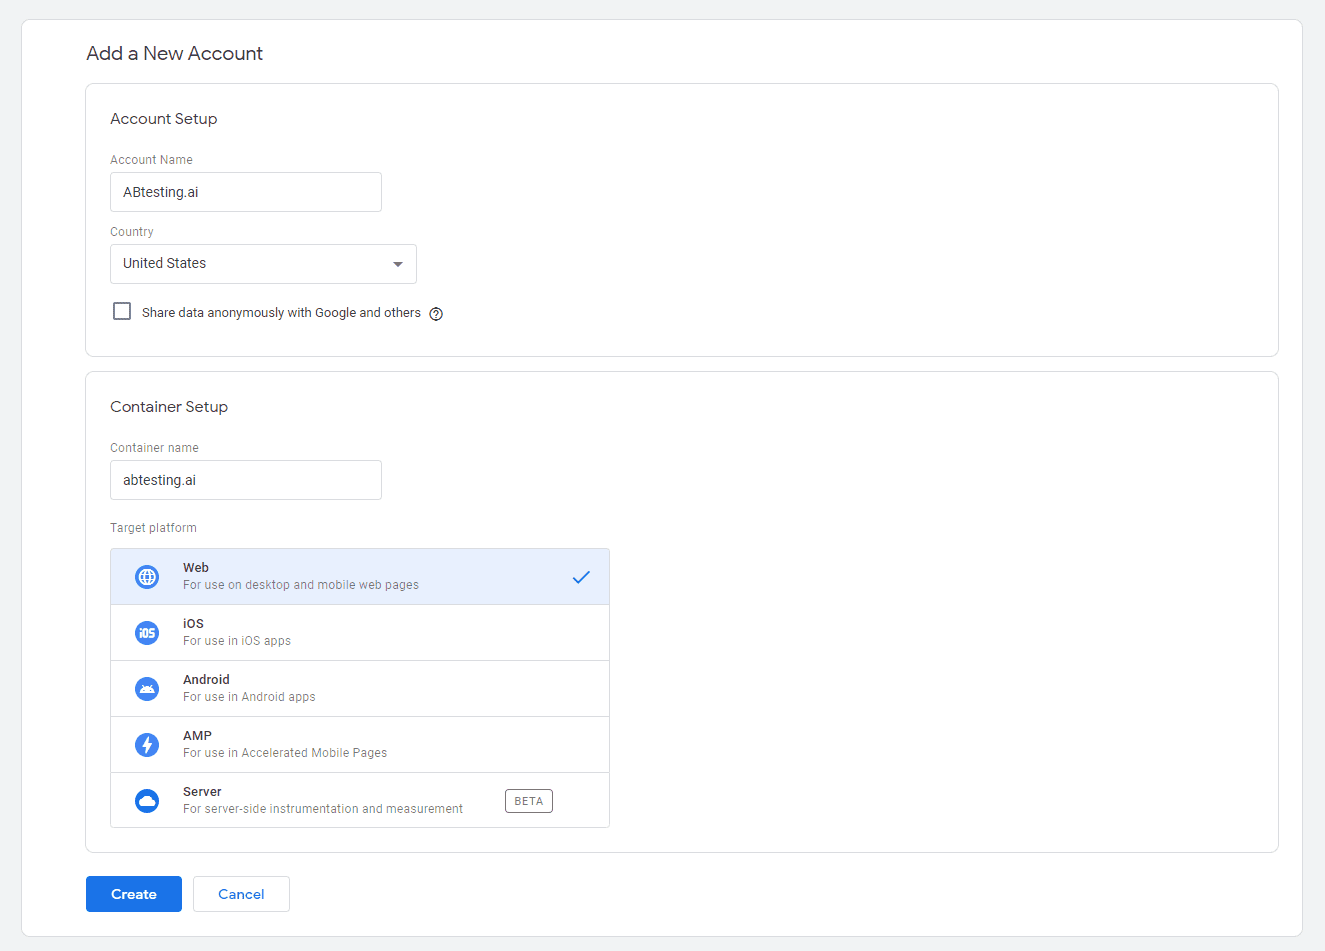 Filling in the company info